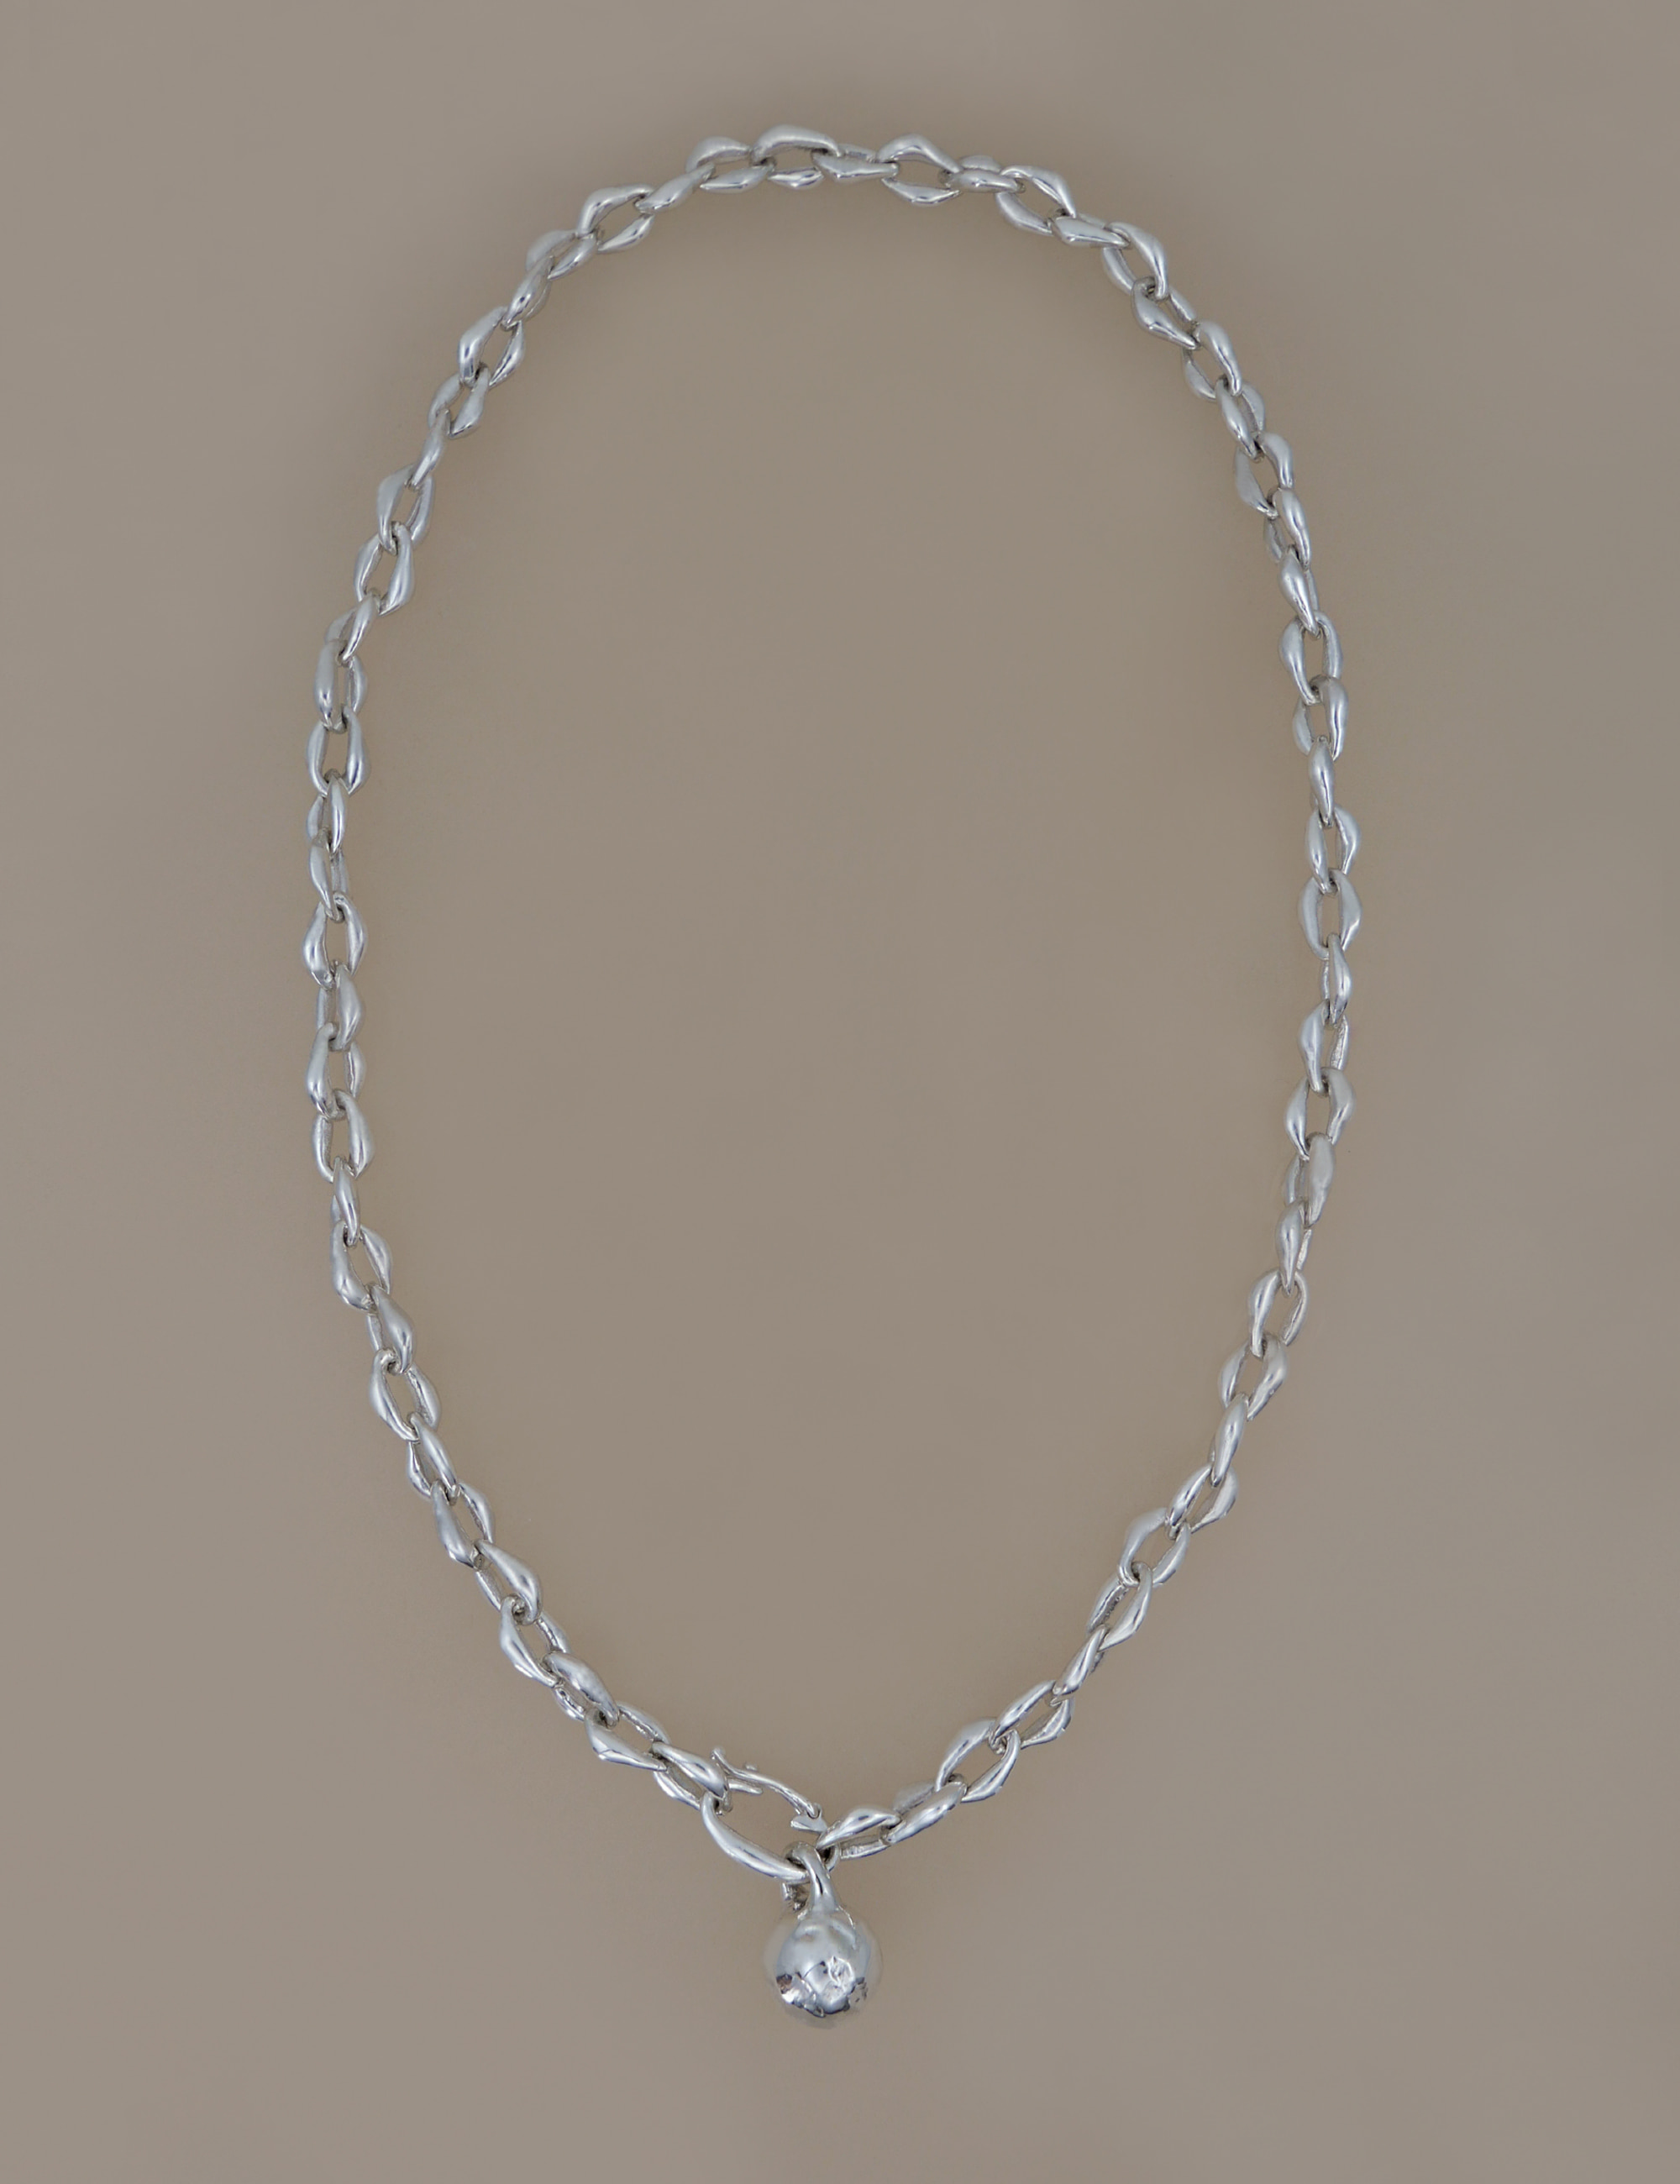 Medium Ball Form Chain Necklace